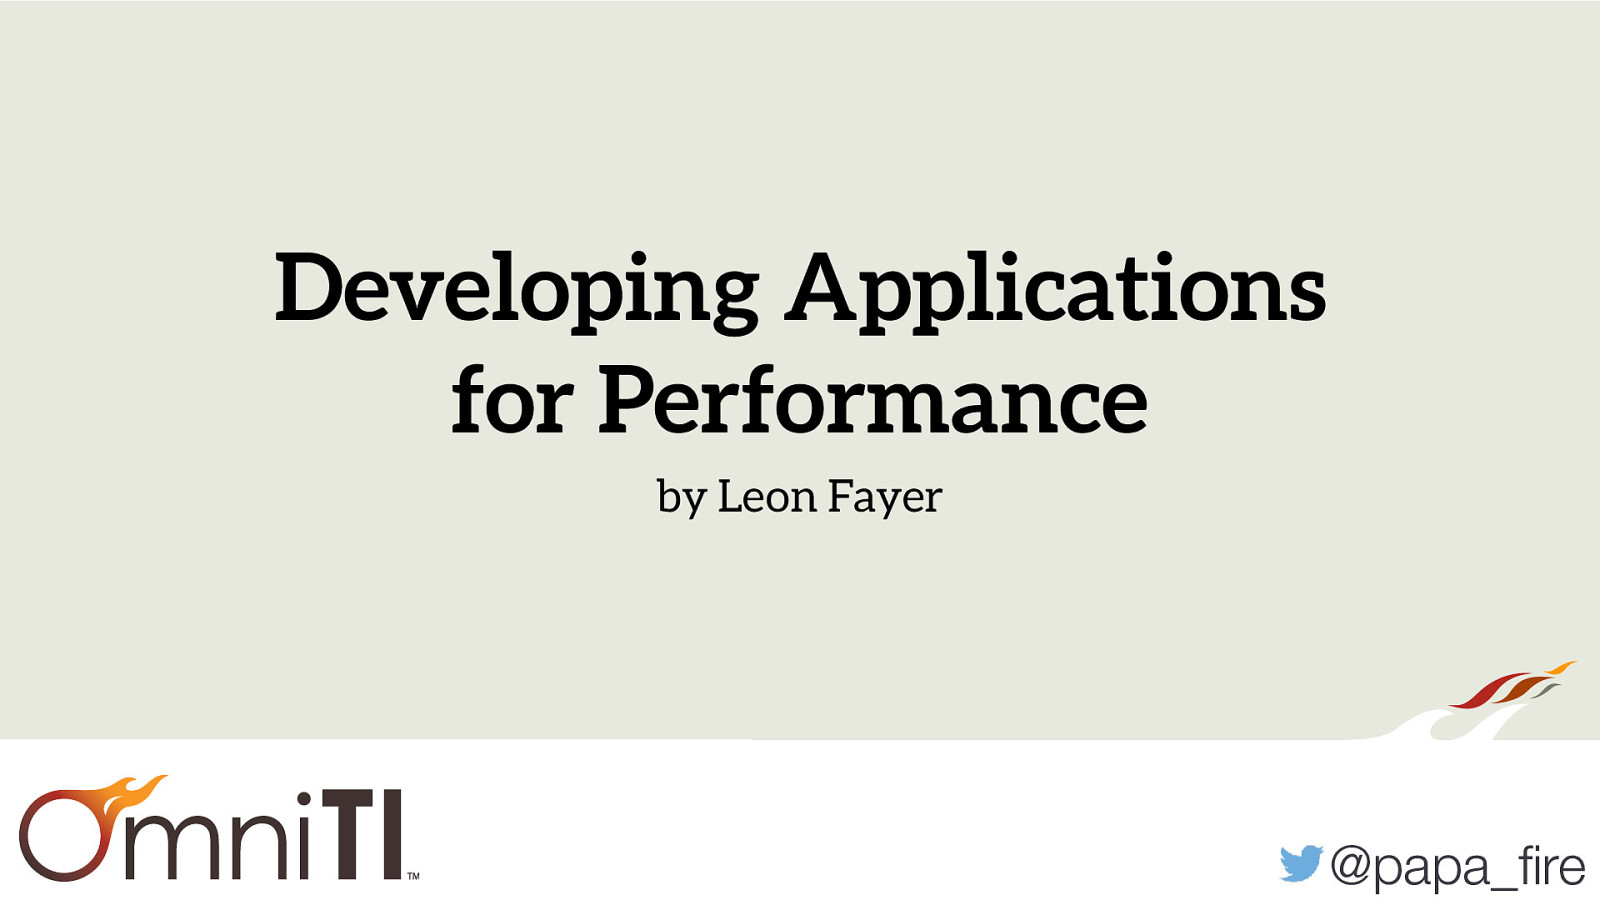 Developing Applications for Performance